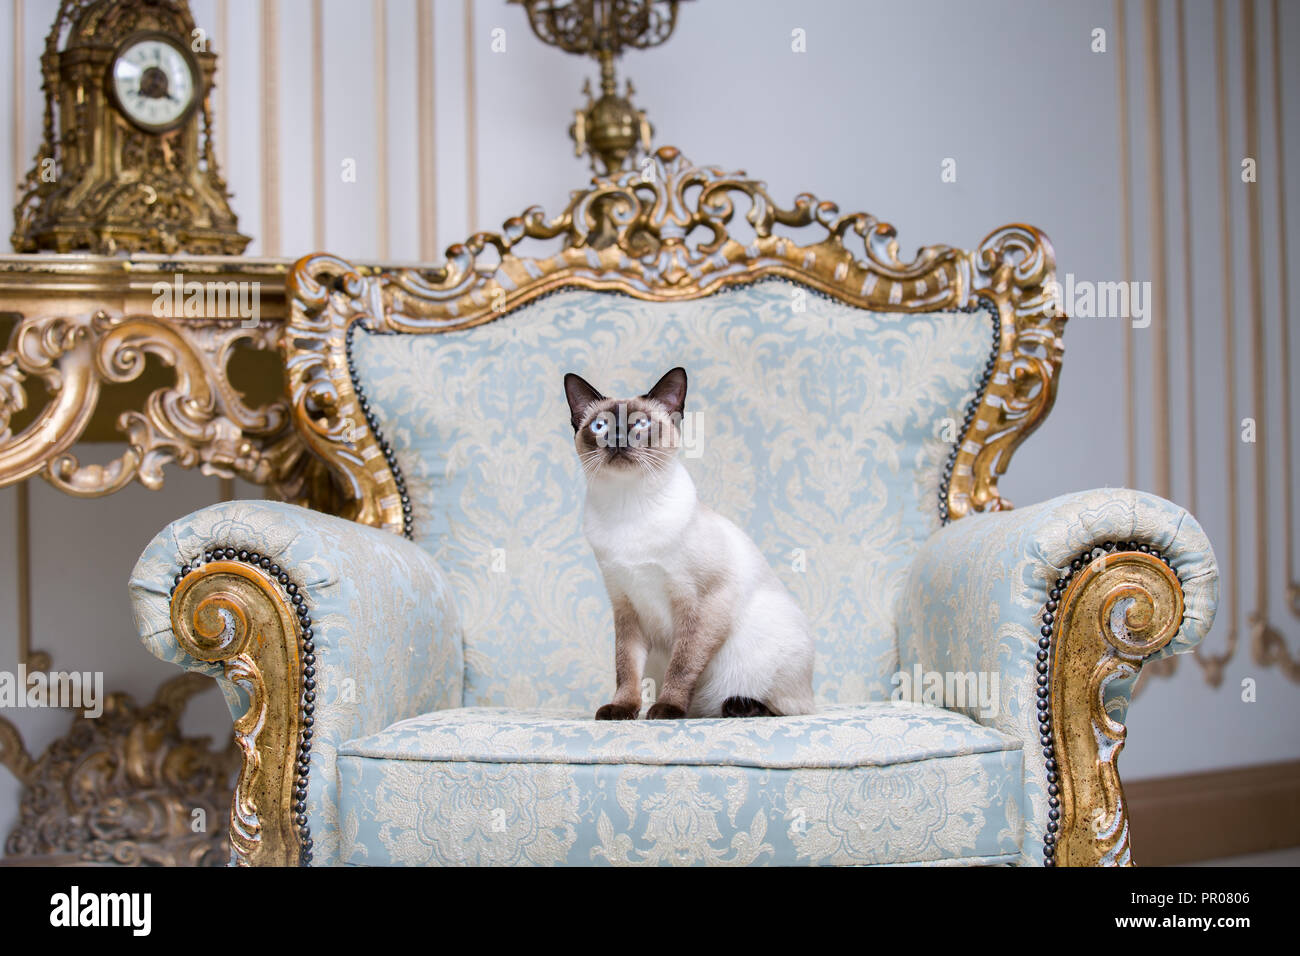 https://c8.alamy.com/compfr/pr0806/belle-race-de-chat-mekongsky-animal-femelle-bobtail-chat-sans-queue-est-membre-de-linterieur-de-larchitecture-europeenne-on-retro-vintage-chic-fauteuil-royal-pr0806.jpg